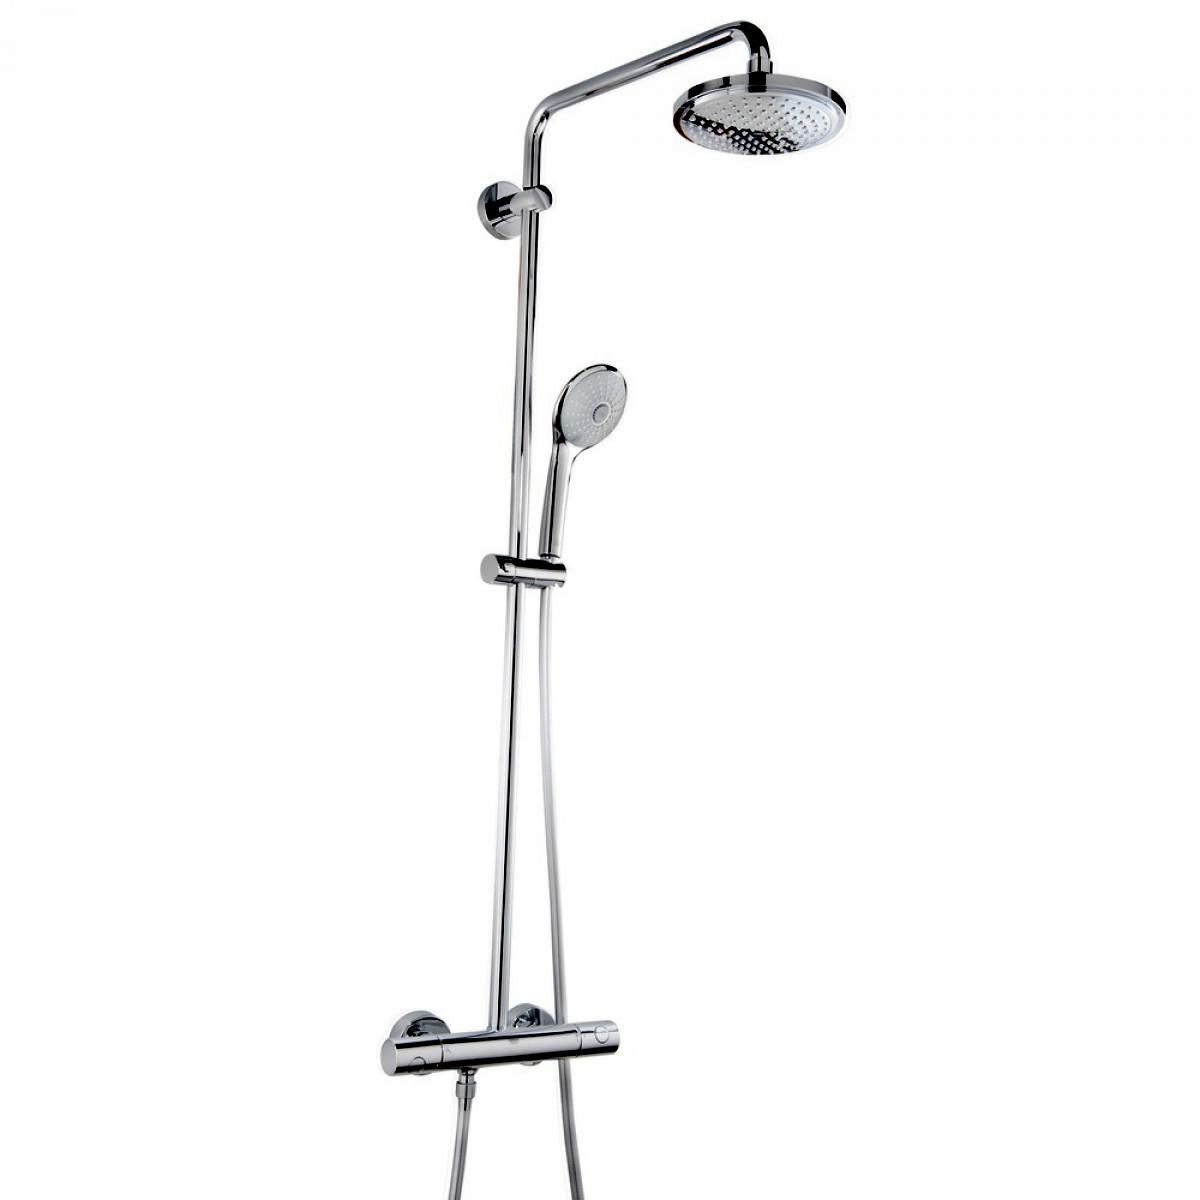 Grohe Euphoria Douchesysteem 180 Chroom Grohe Euphoria 180 Shop Grohe Euphoria System 180 Xammax Grohe